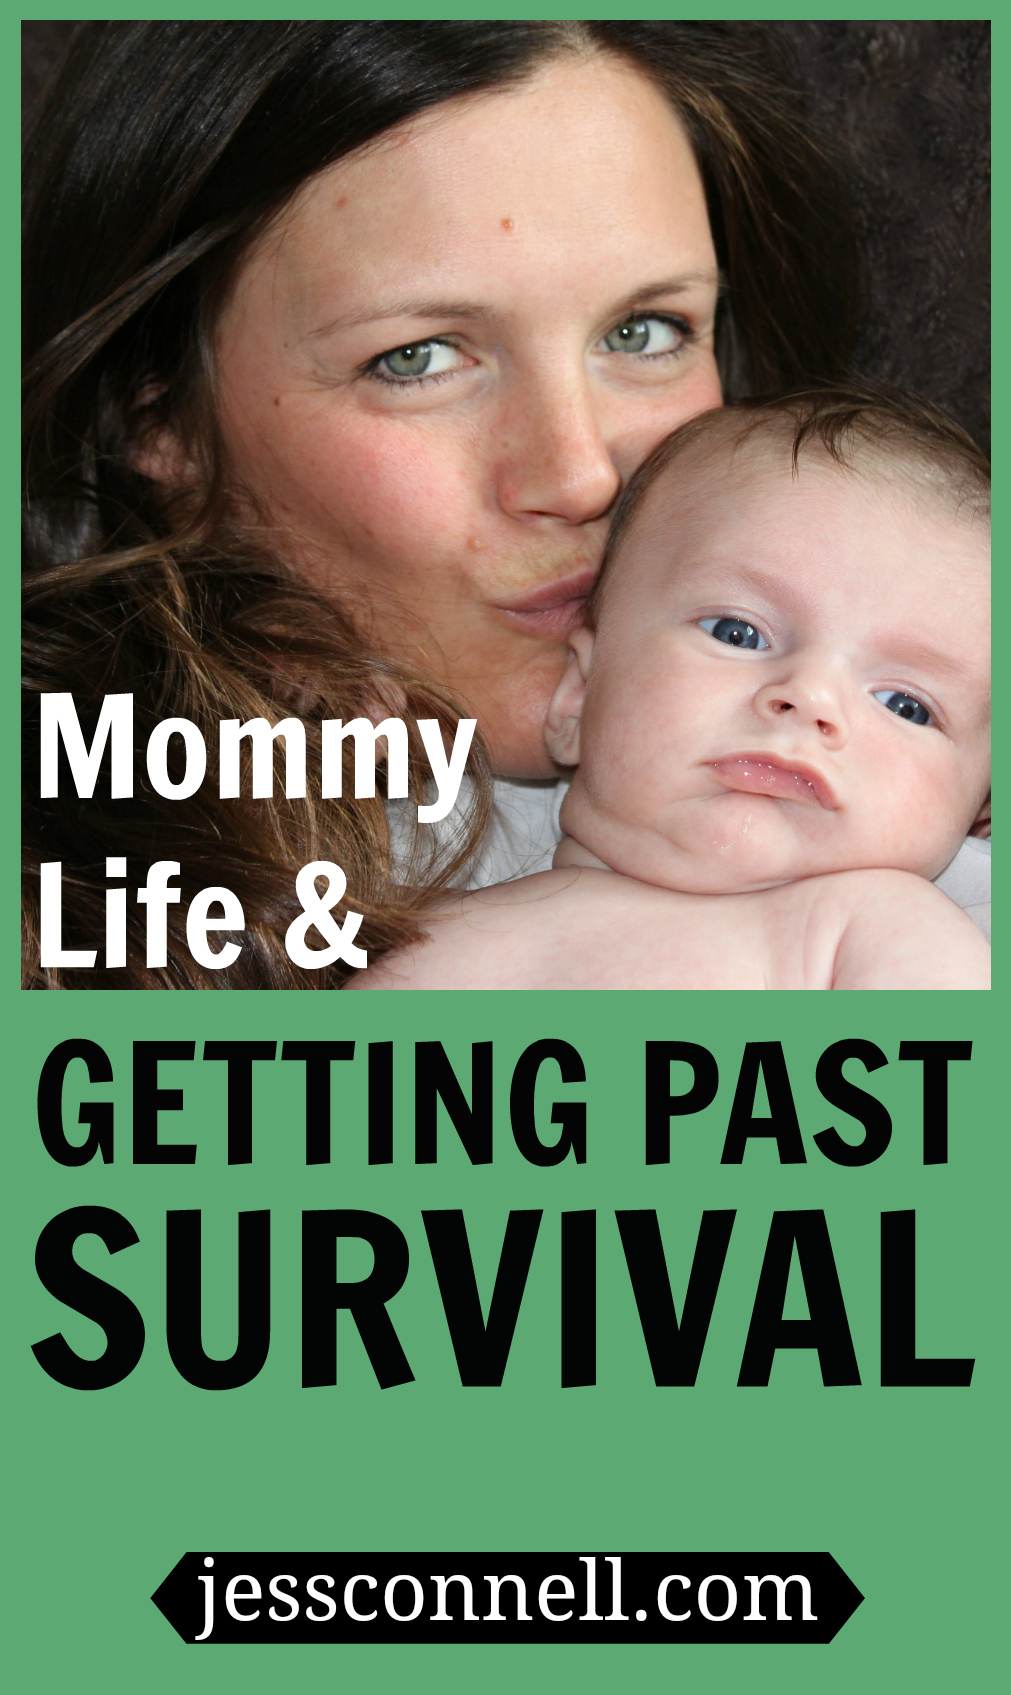 Mommy Life & Getting Past Survival // jessconnell.com